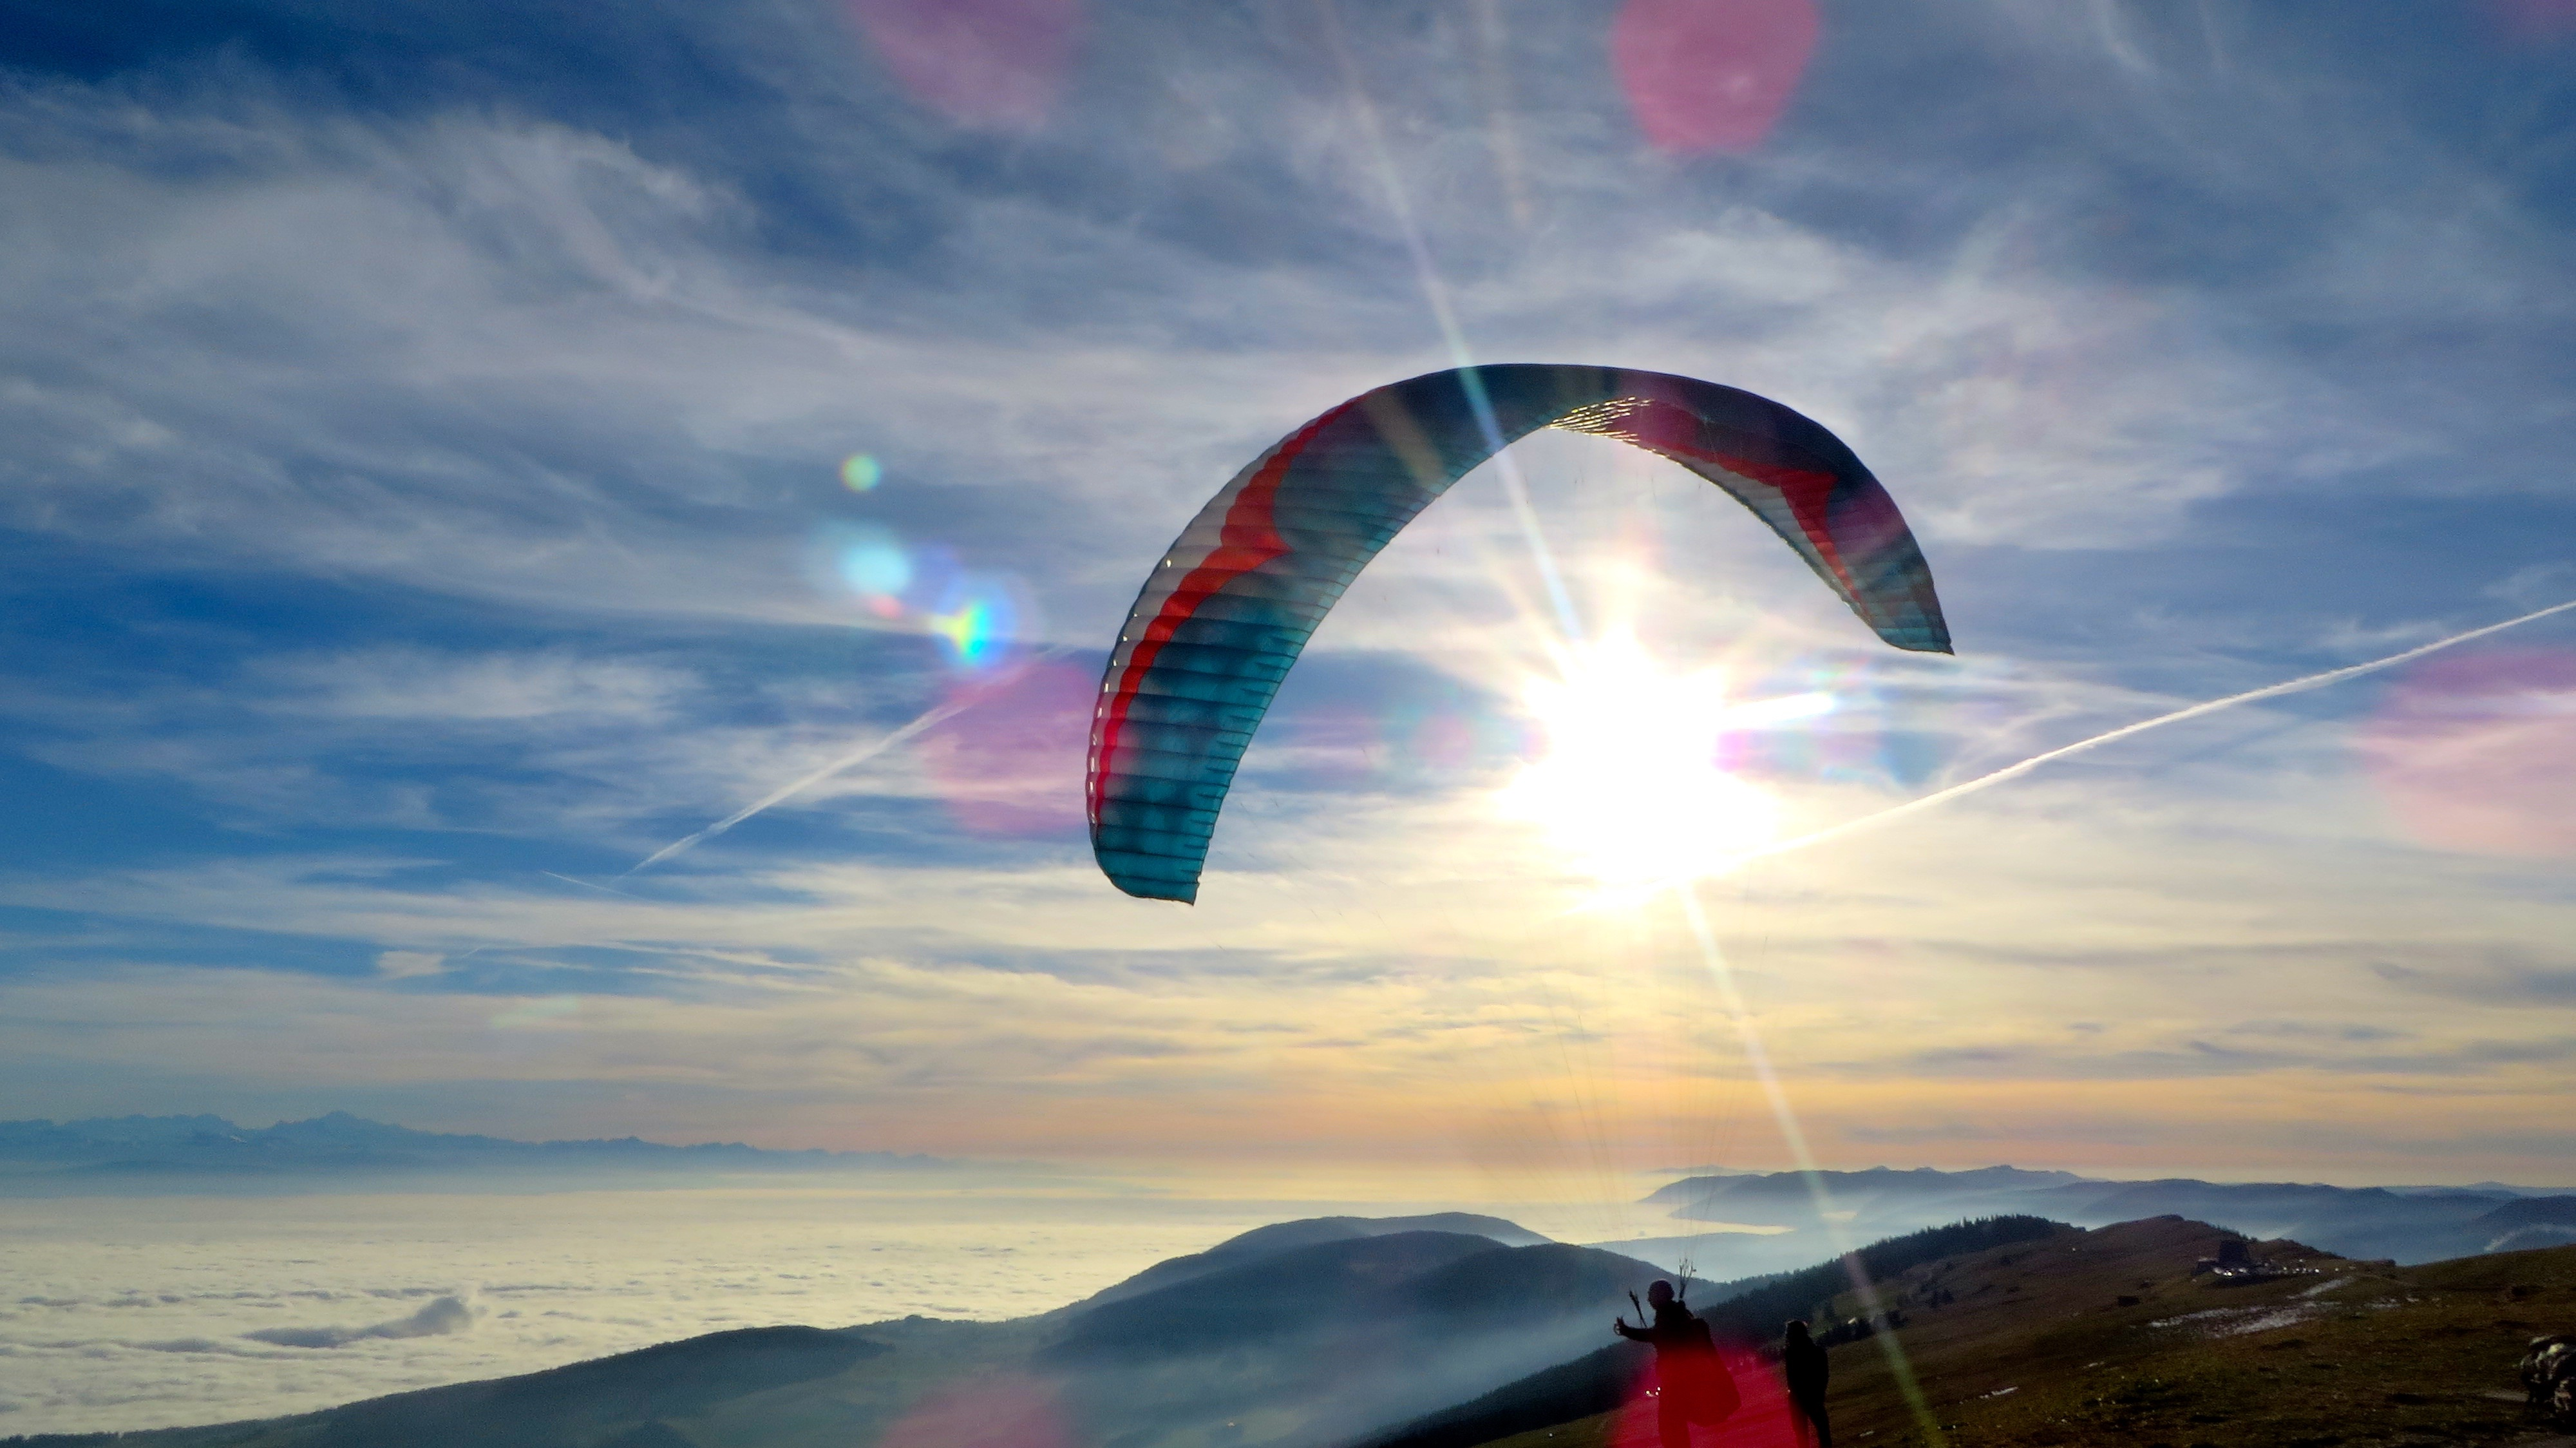 Paraglider at the Chasseral on November 22, 2014.